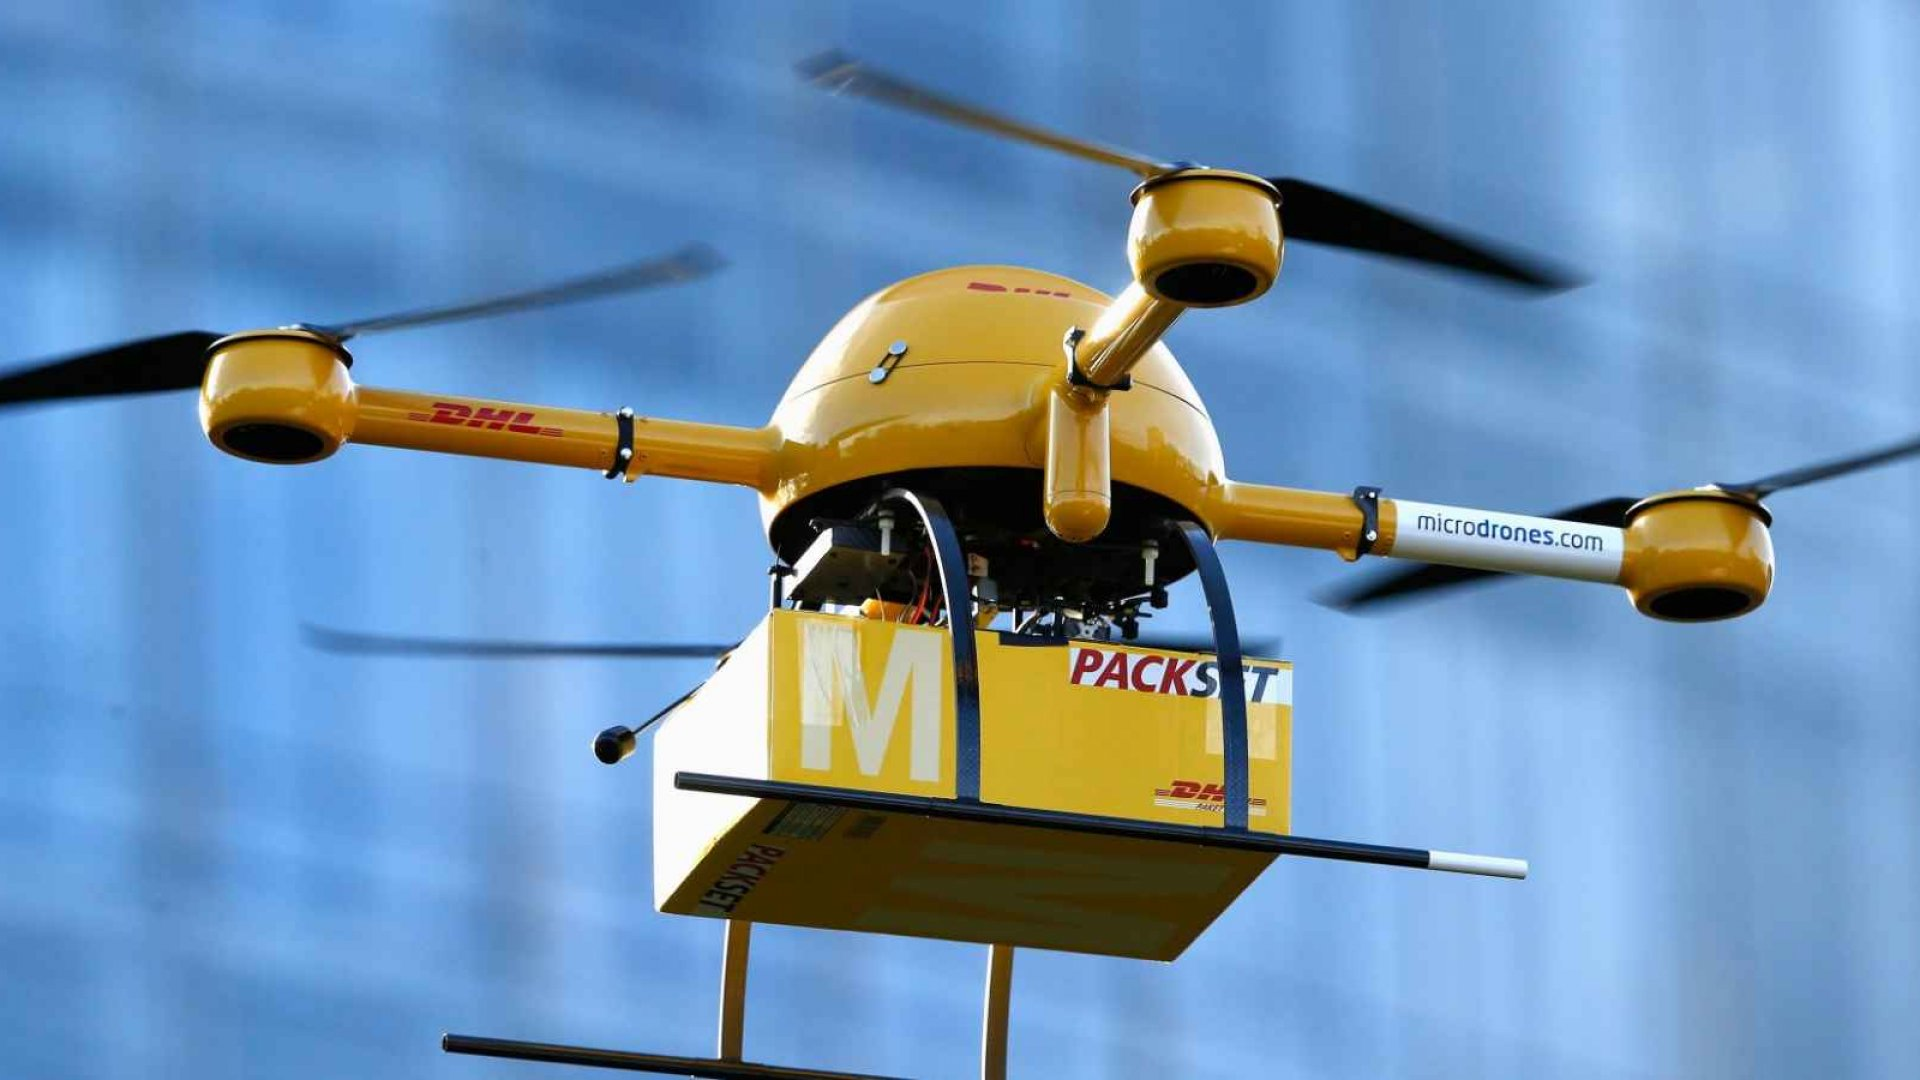 Delivery by Drone in 30 Minutes? Amazon Says It's Coming